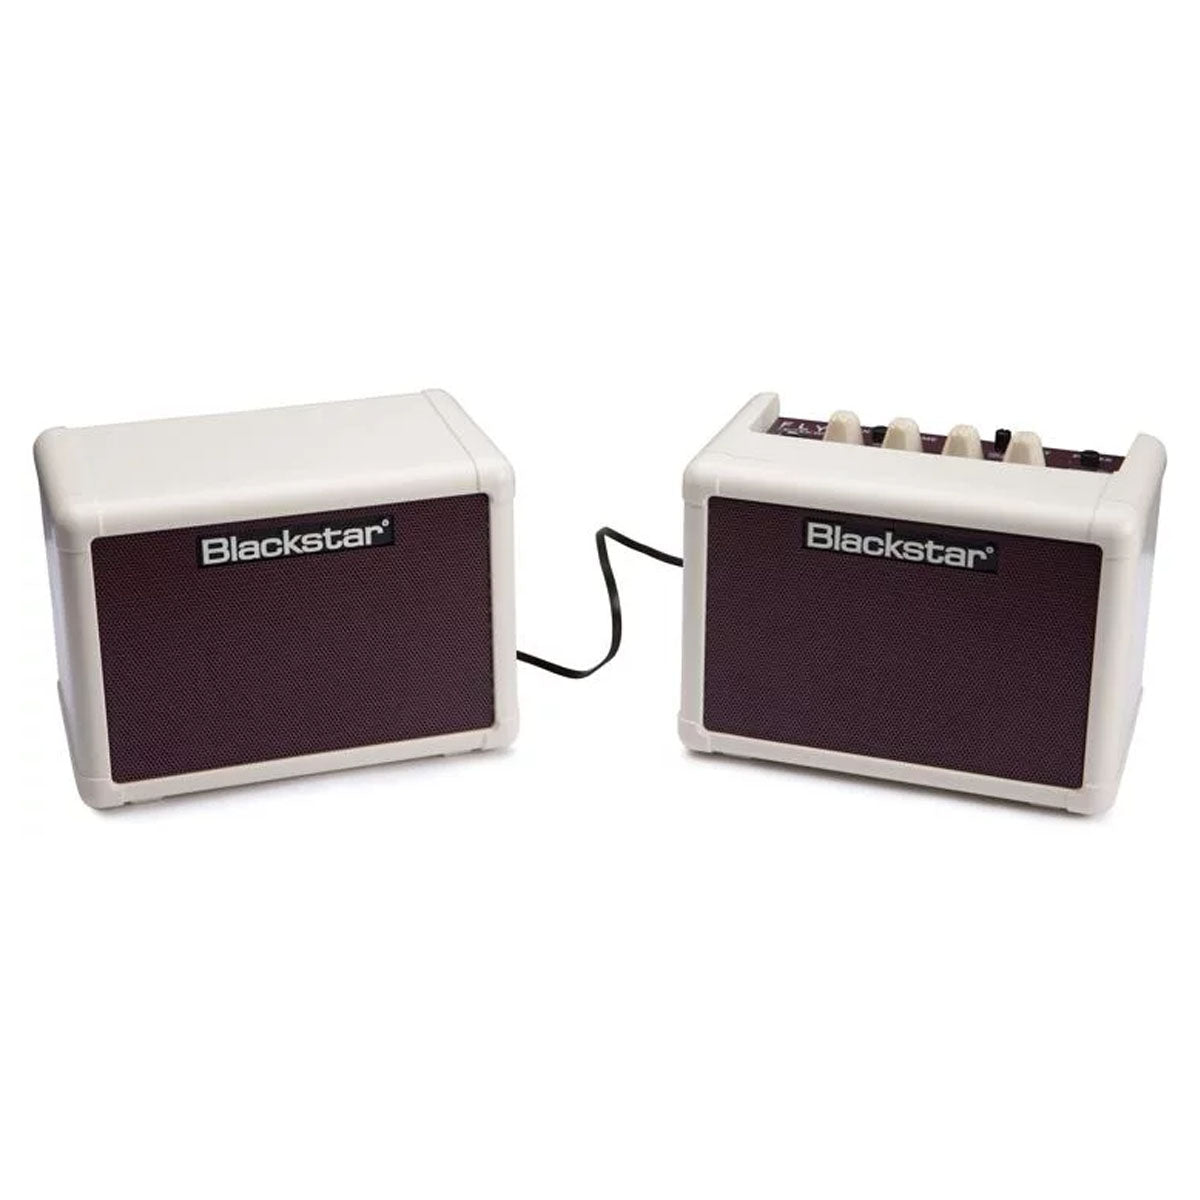 Blackstar FLY 3 Amp Pack Mini Guitar Amplifier Limited Edition Vintage w/ Ext Cab & Power Supply